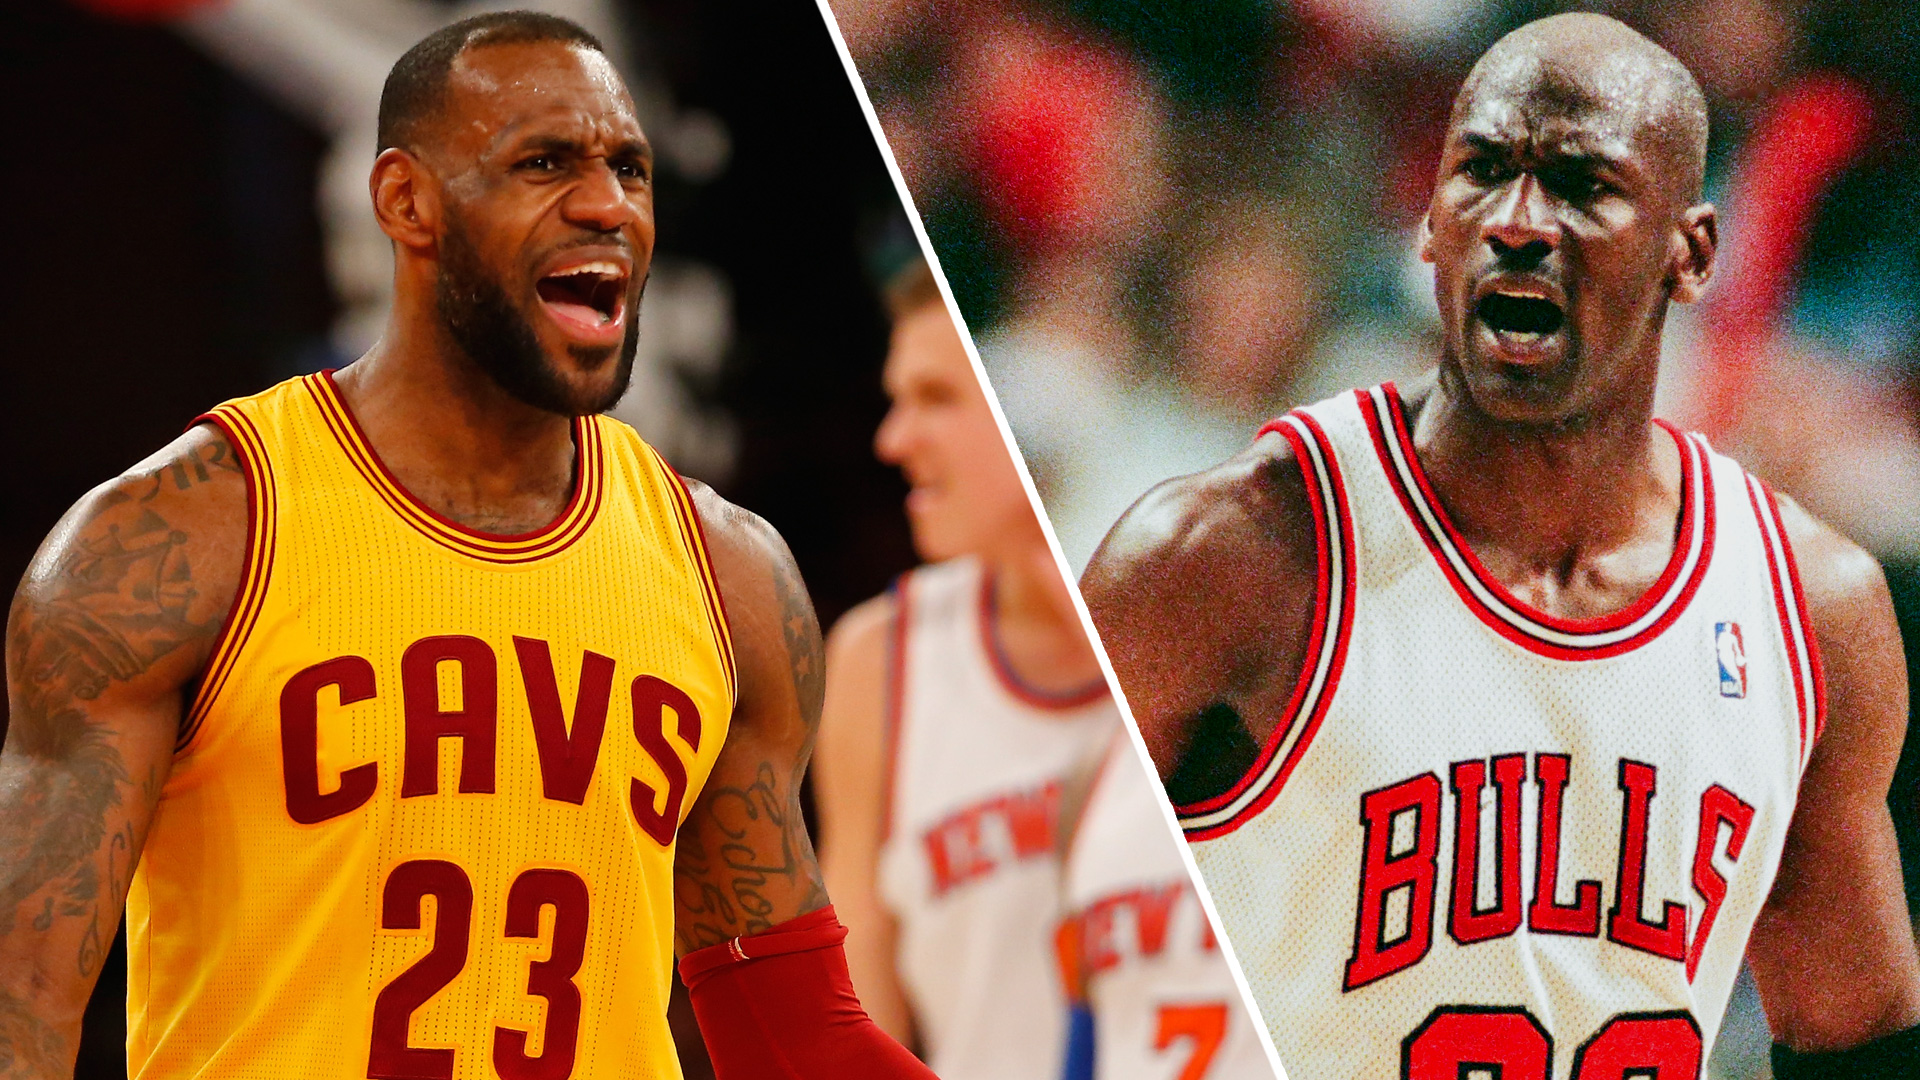 Why Lebron James is better than Michael Jordan - The Grueling Truth f7541e4c6